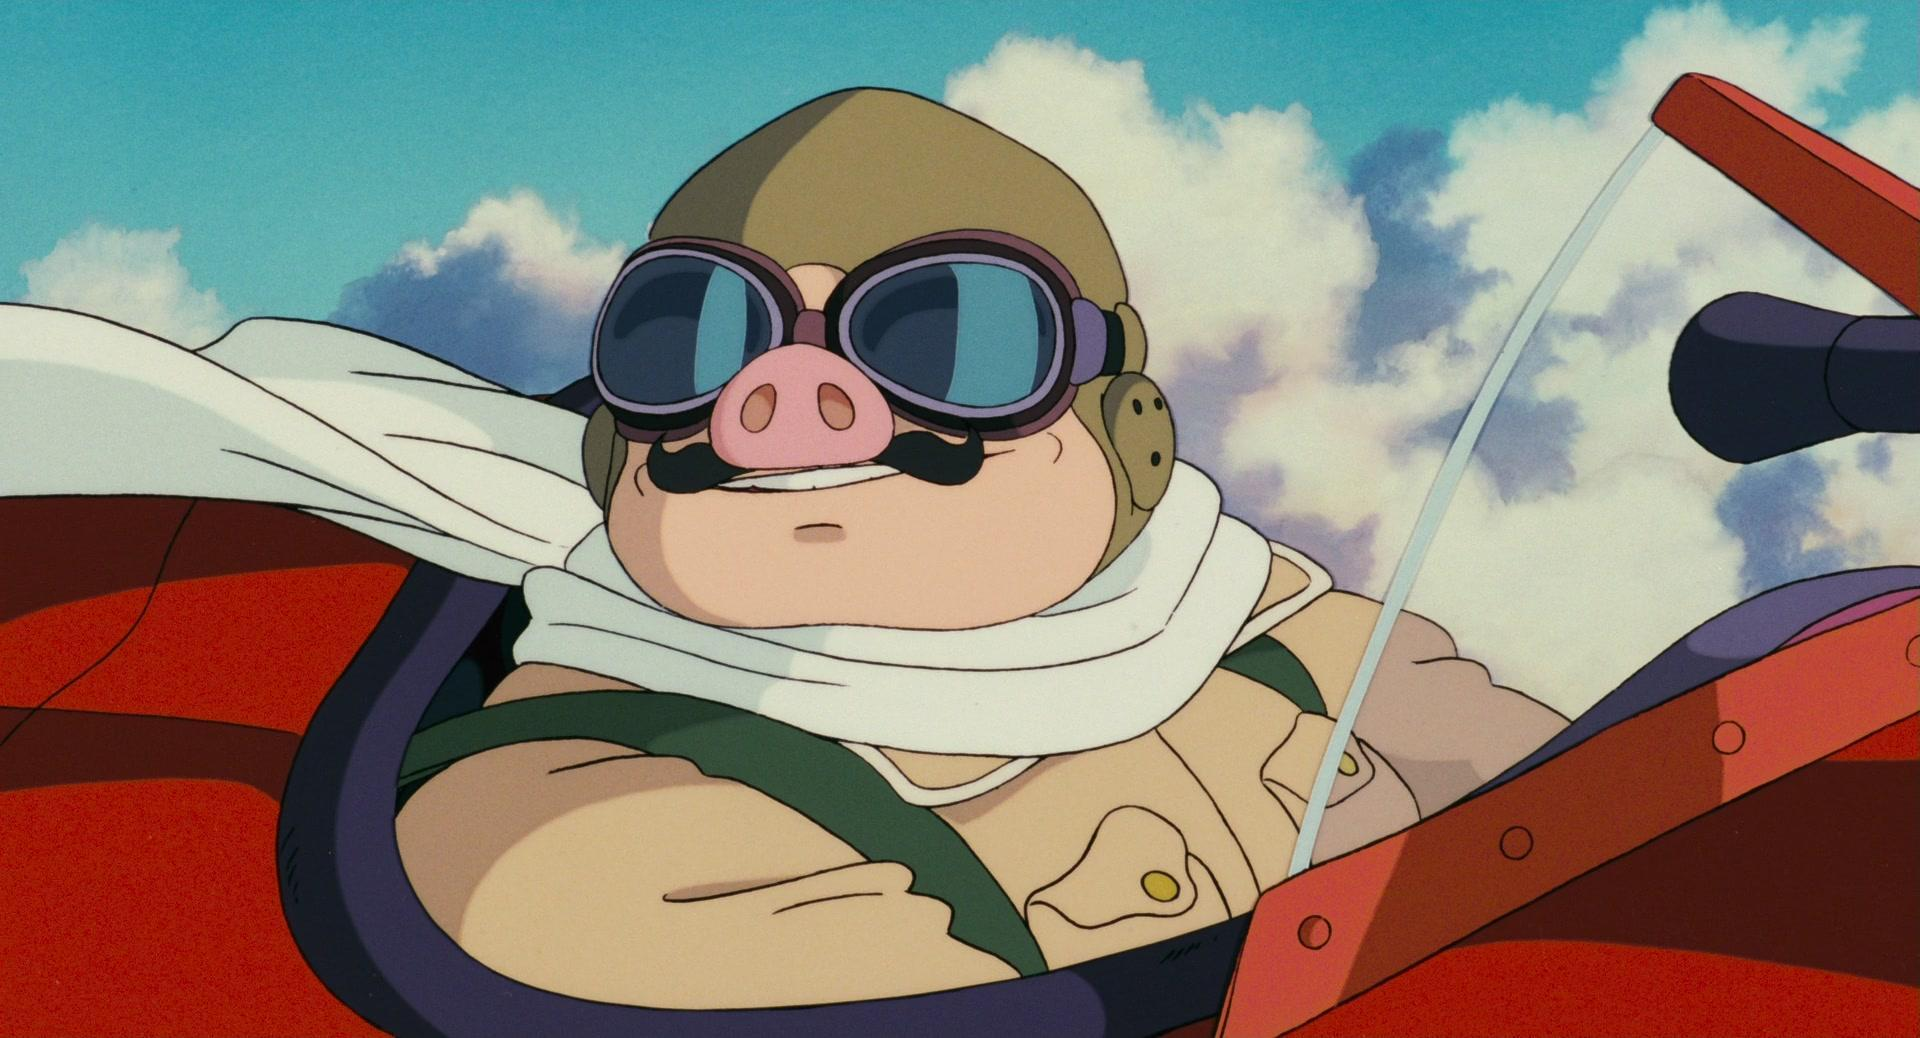 an anthropomorphic pig in a plane